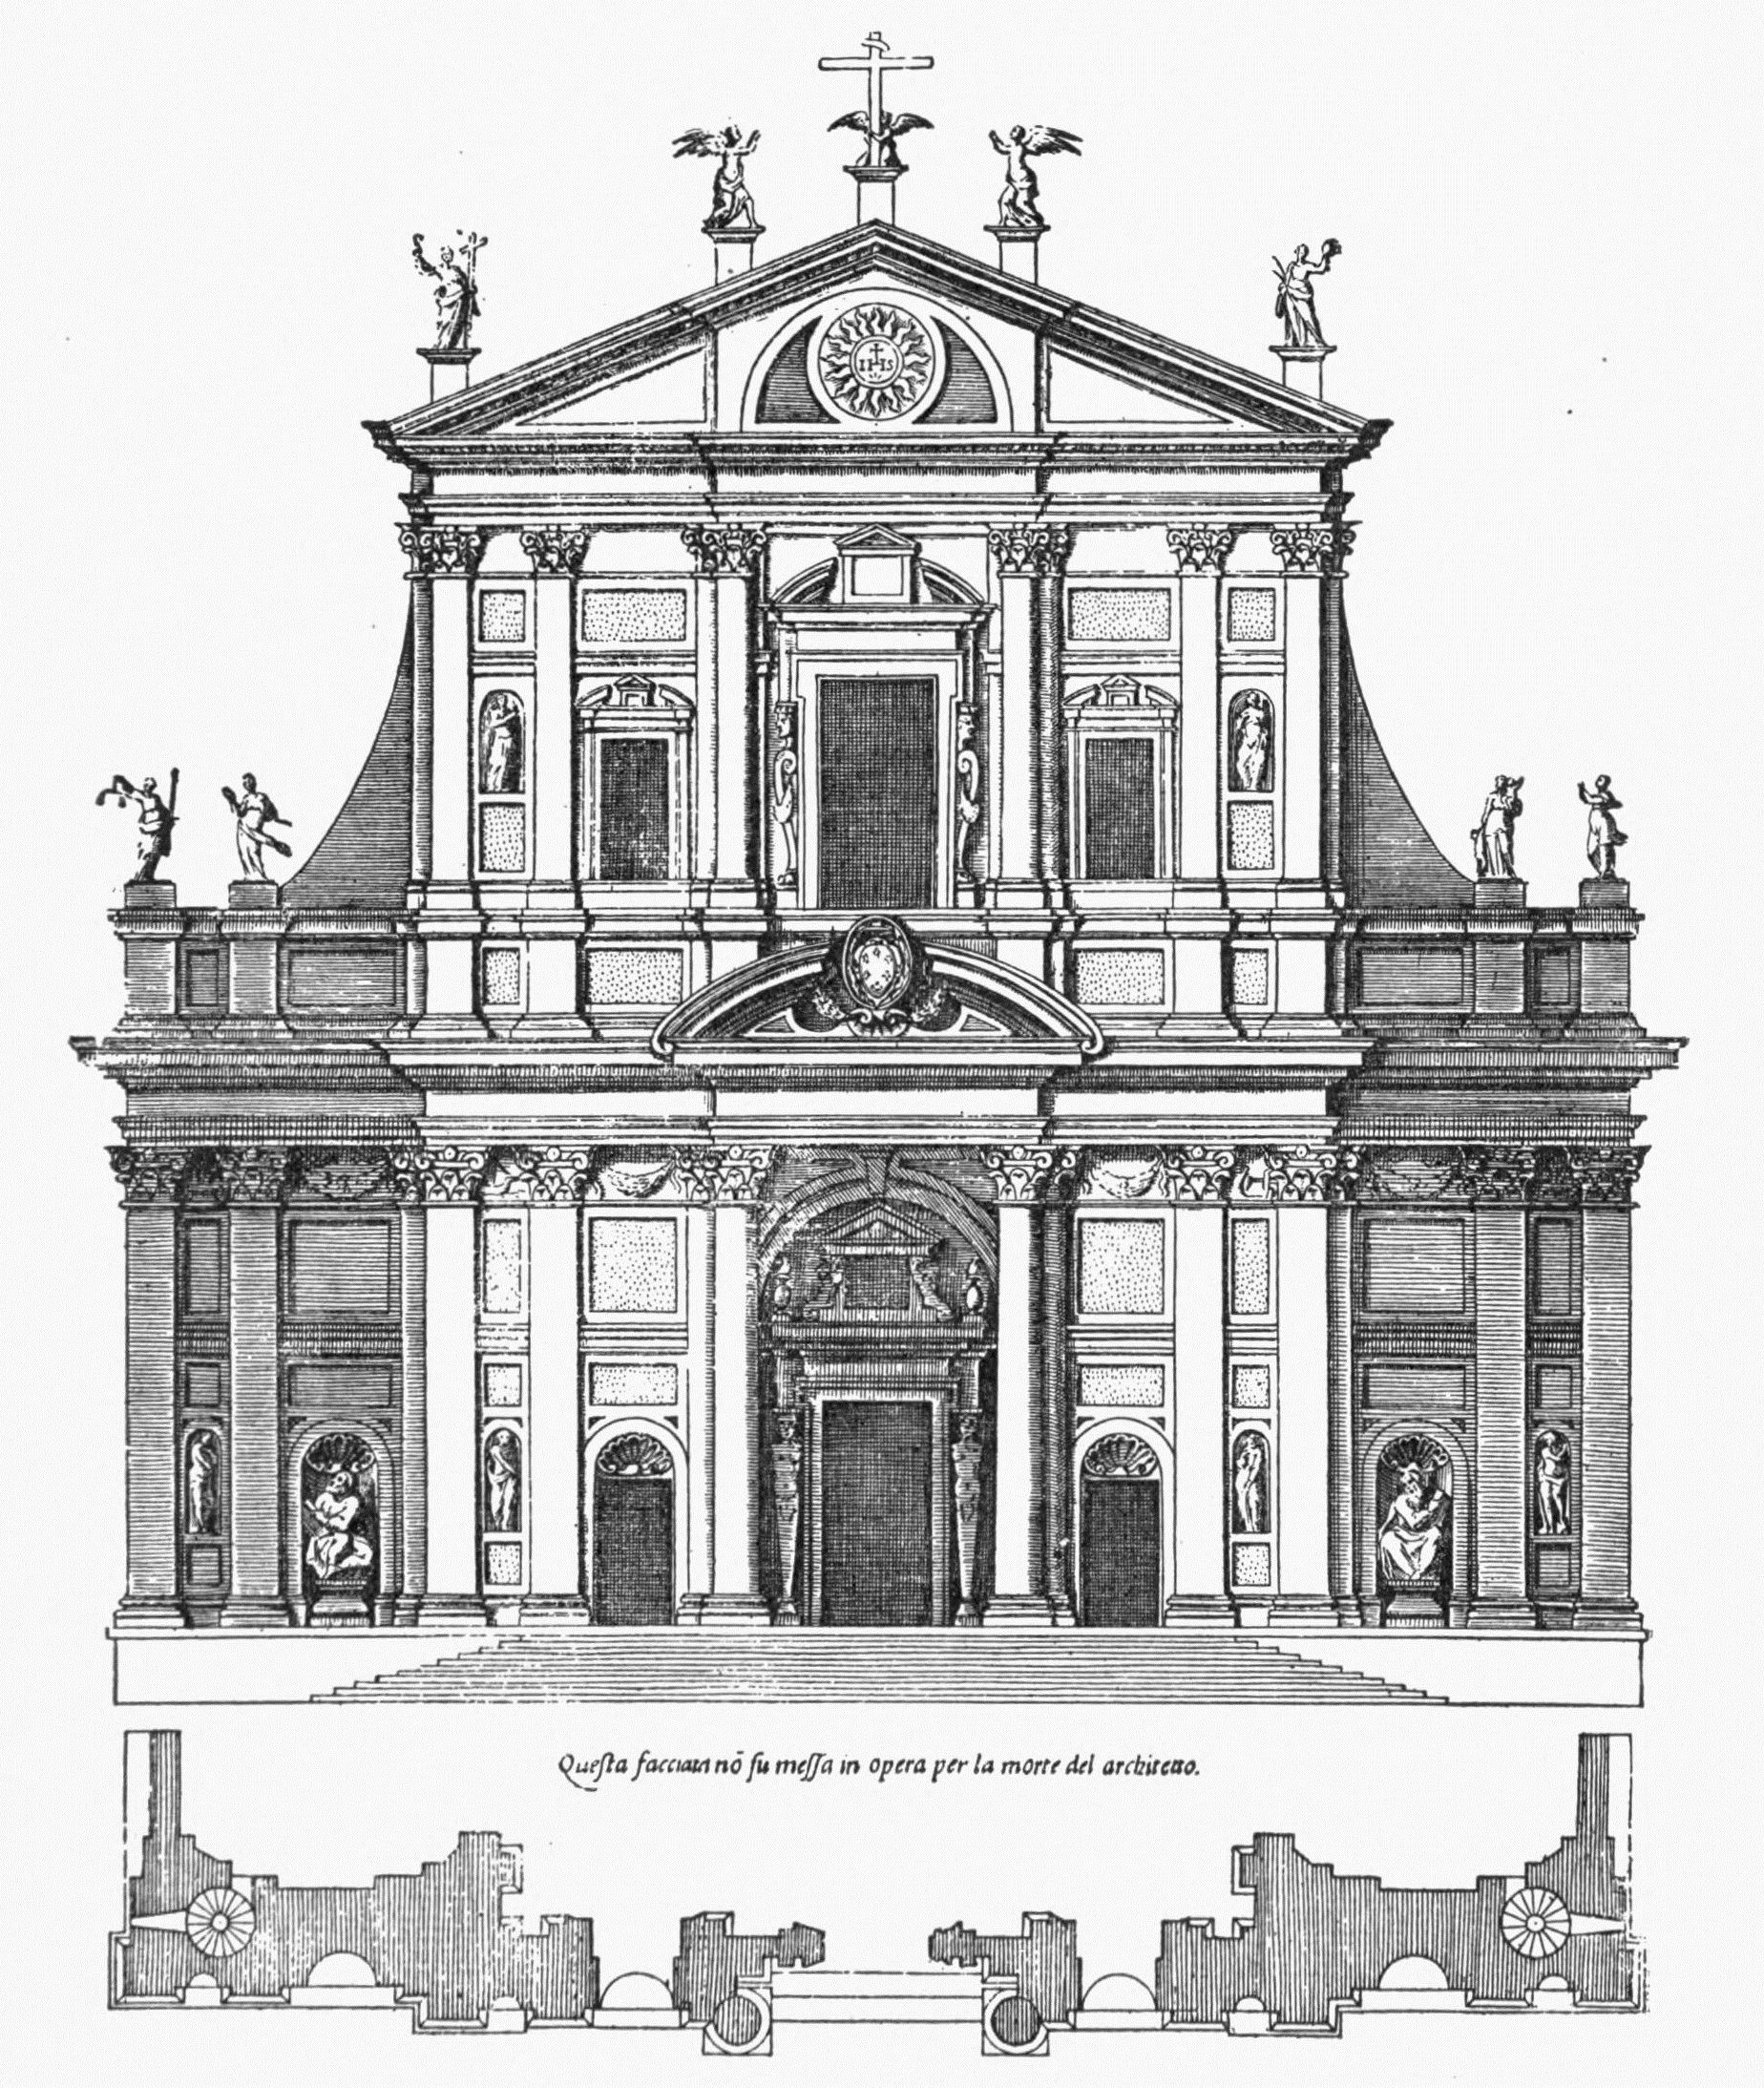 Renaissance Architecture: File:Character Of Renaissance Architecture 0123.jpg